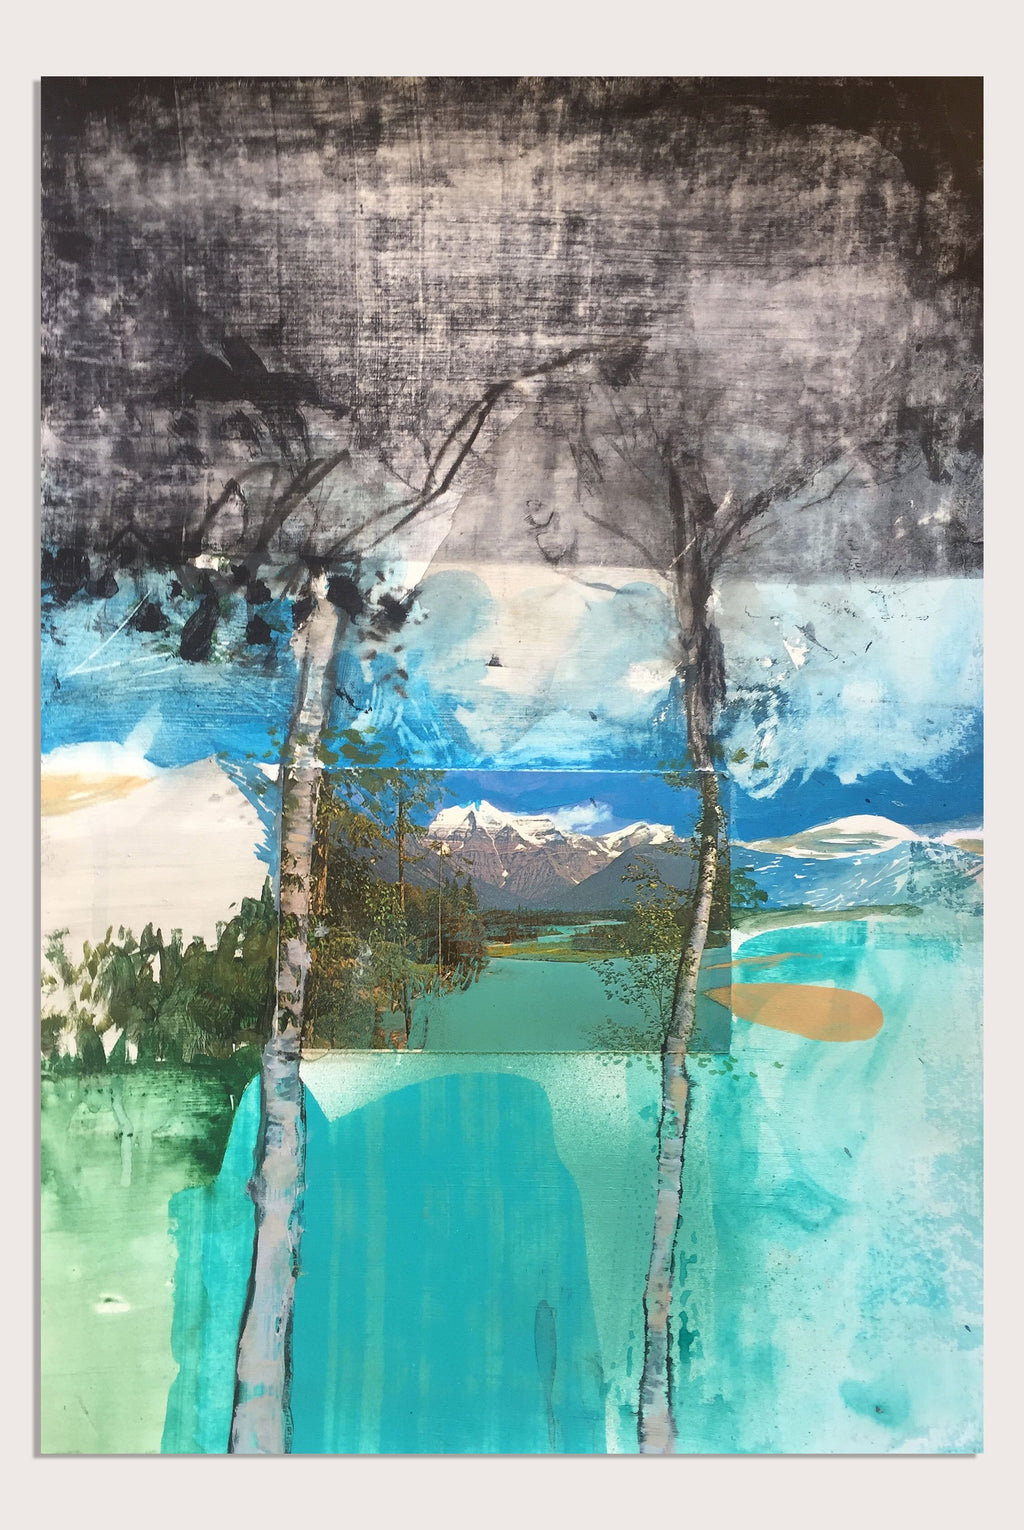 'Fake Views VII: Berg Lake', a new landscape painting and collage by contemporary artist Faye Dobinson